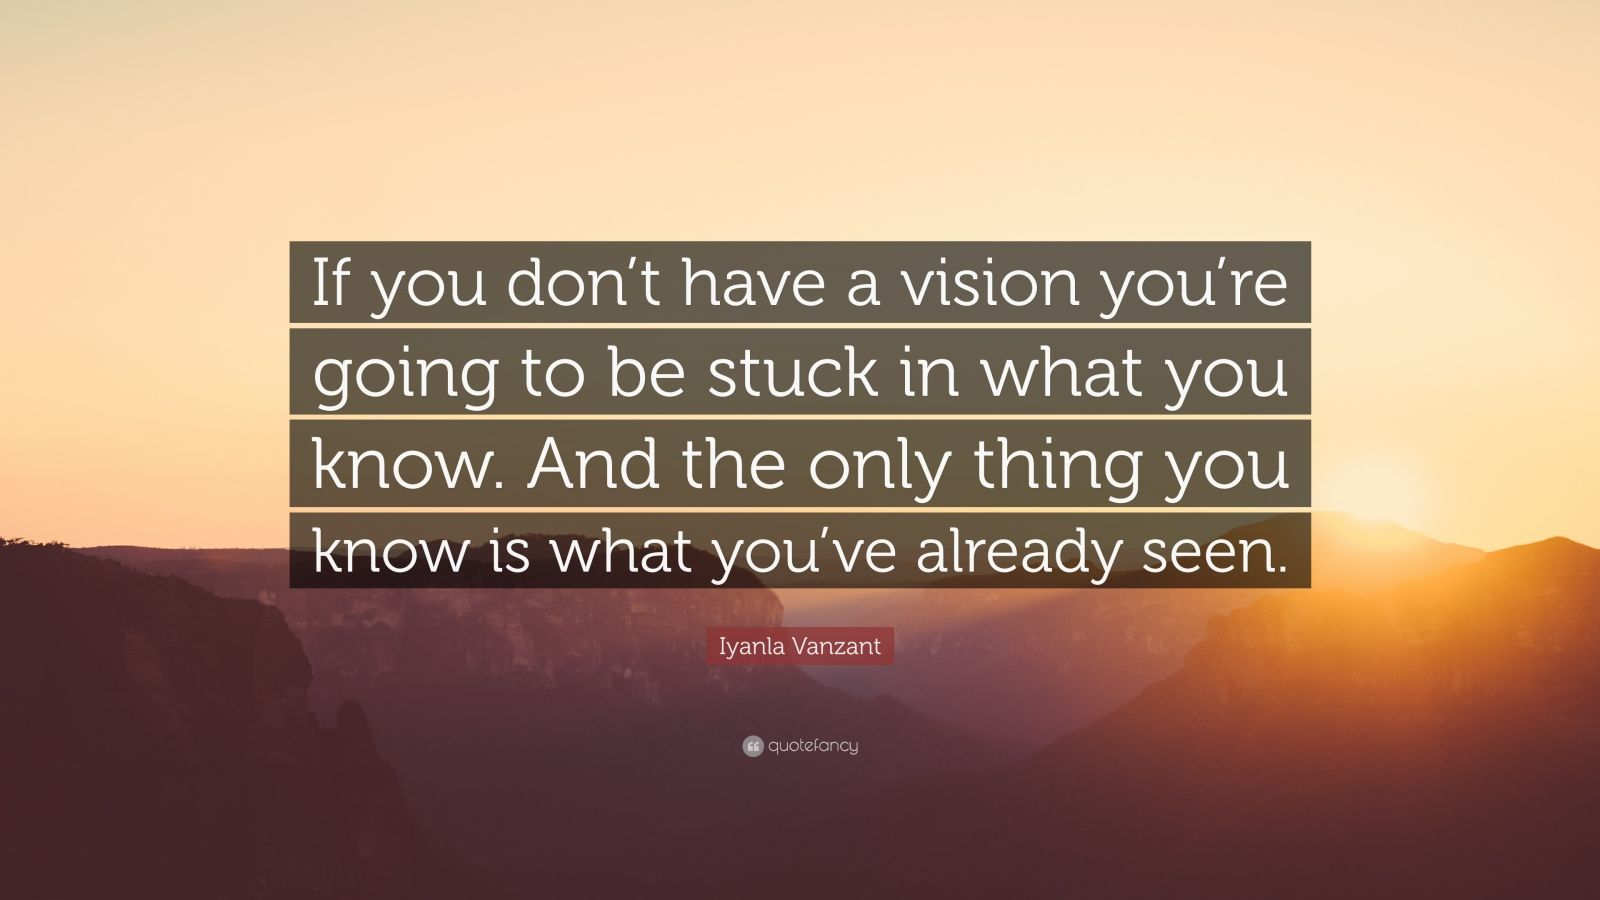 """Iyanla Vanzant Quote: """"If you don't have a vision you're going to be stuck in what you know. And the only thing you know is what you've already seen."""""""